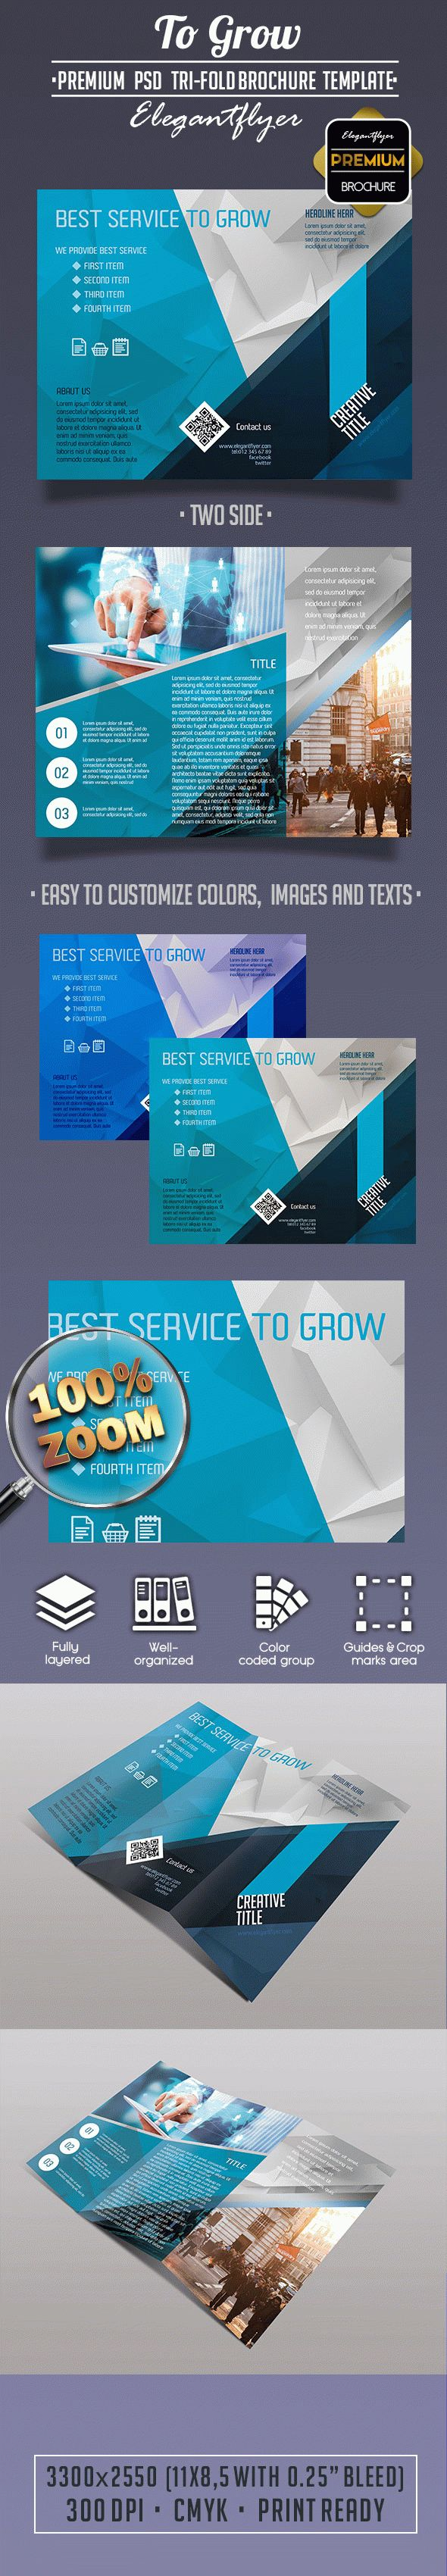 To Grow PSD Tri-Fold Brochure